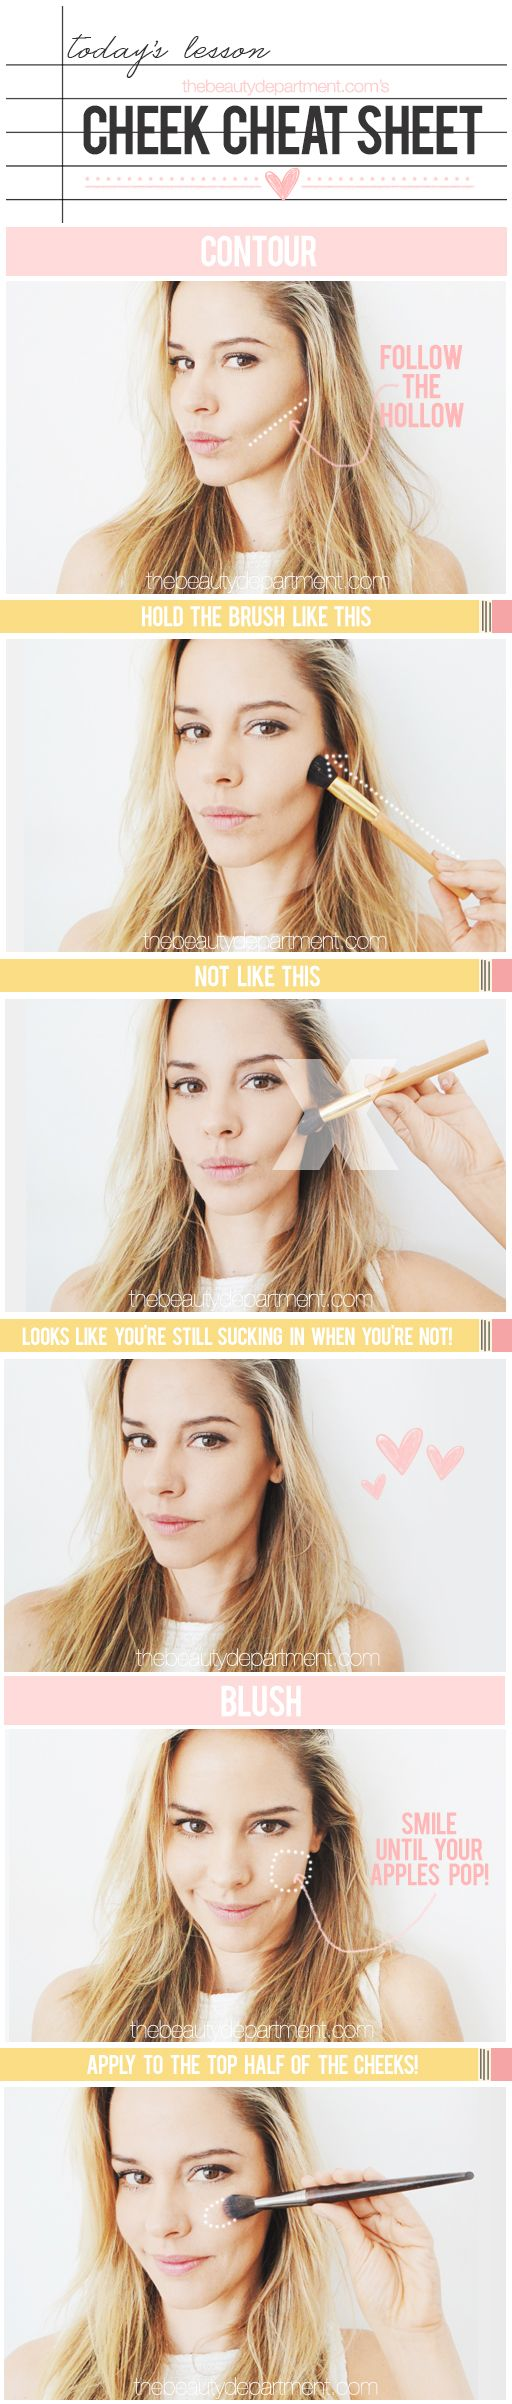 Blush and face contouring keeps the attention where you really want it in a photograph: eyes and mouth.  TBDCheekCheatSheet